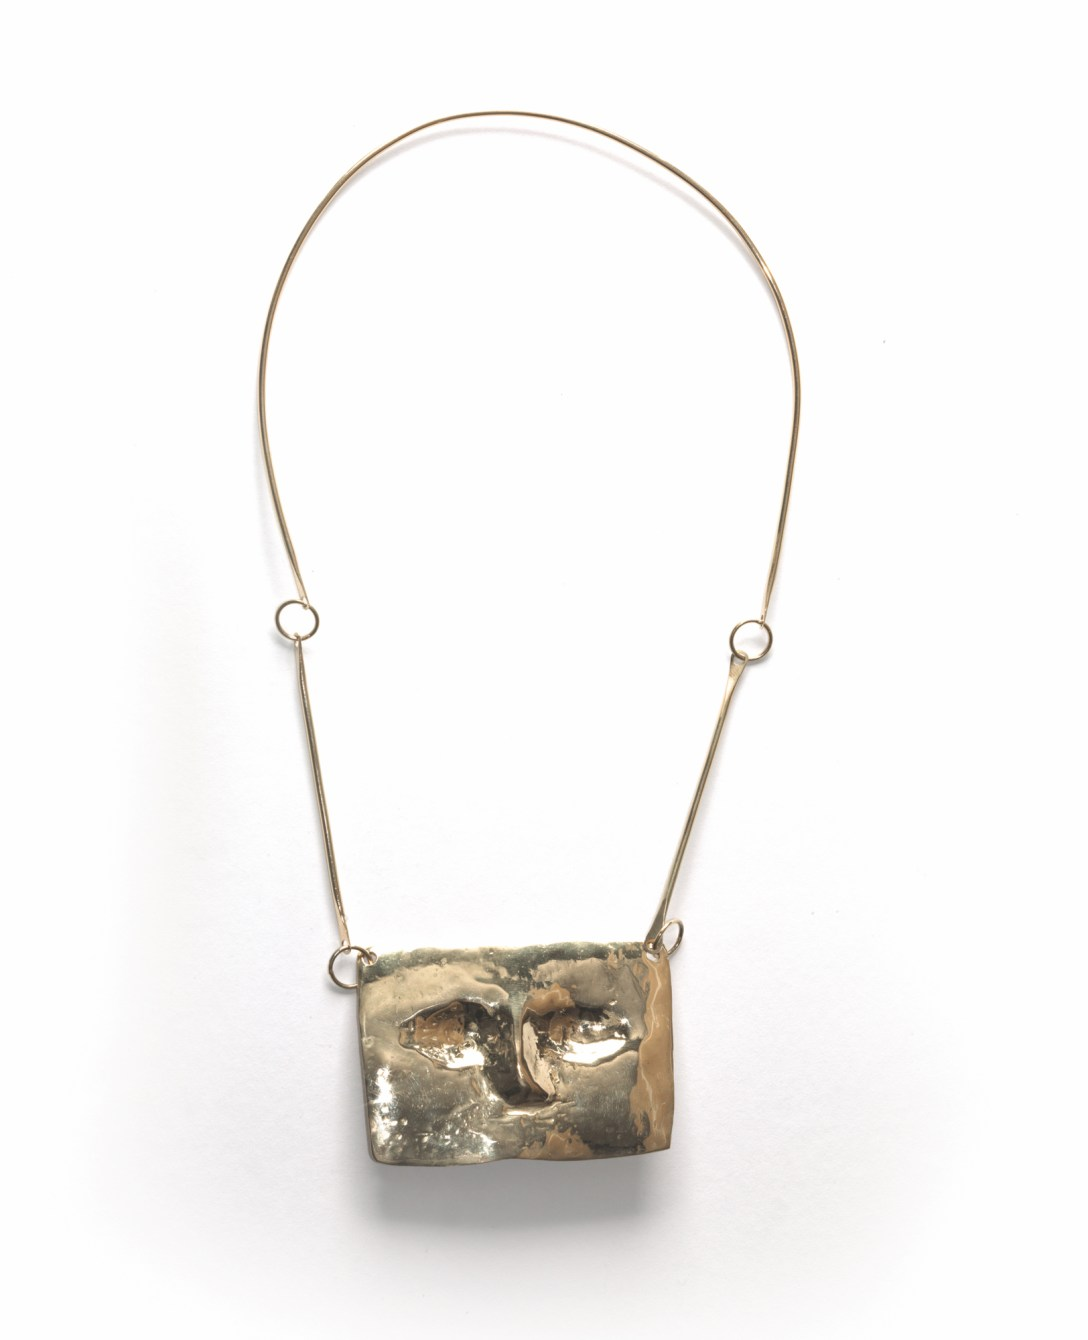 'Chadwick' Pectoral 'Necklace' which has been 'Cast' in 'Gold' by Pangolin Editions